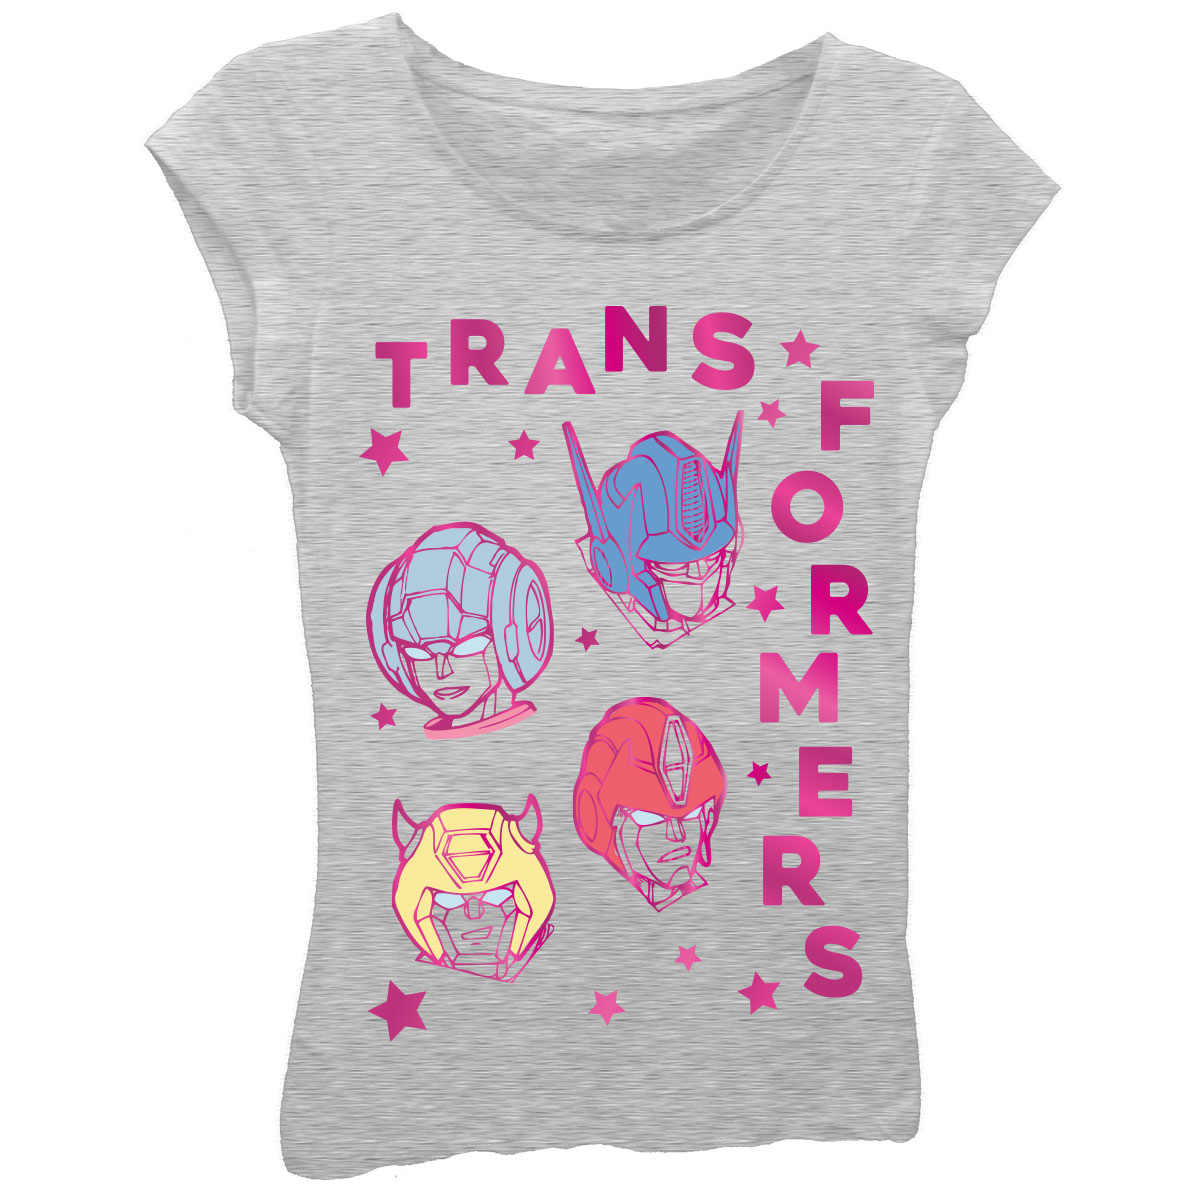 "Transformers Girls' ""Transformers"" Short Sleeve Graphic T-shirt With Pink Foil"